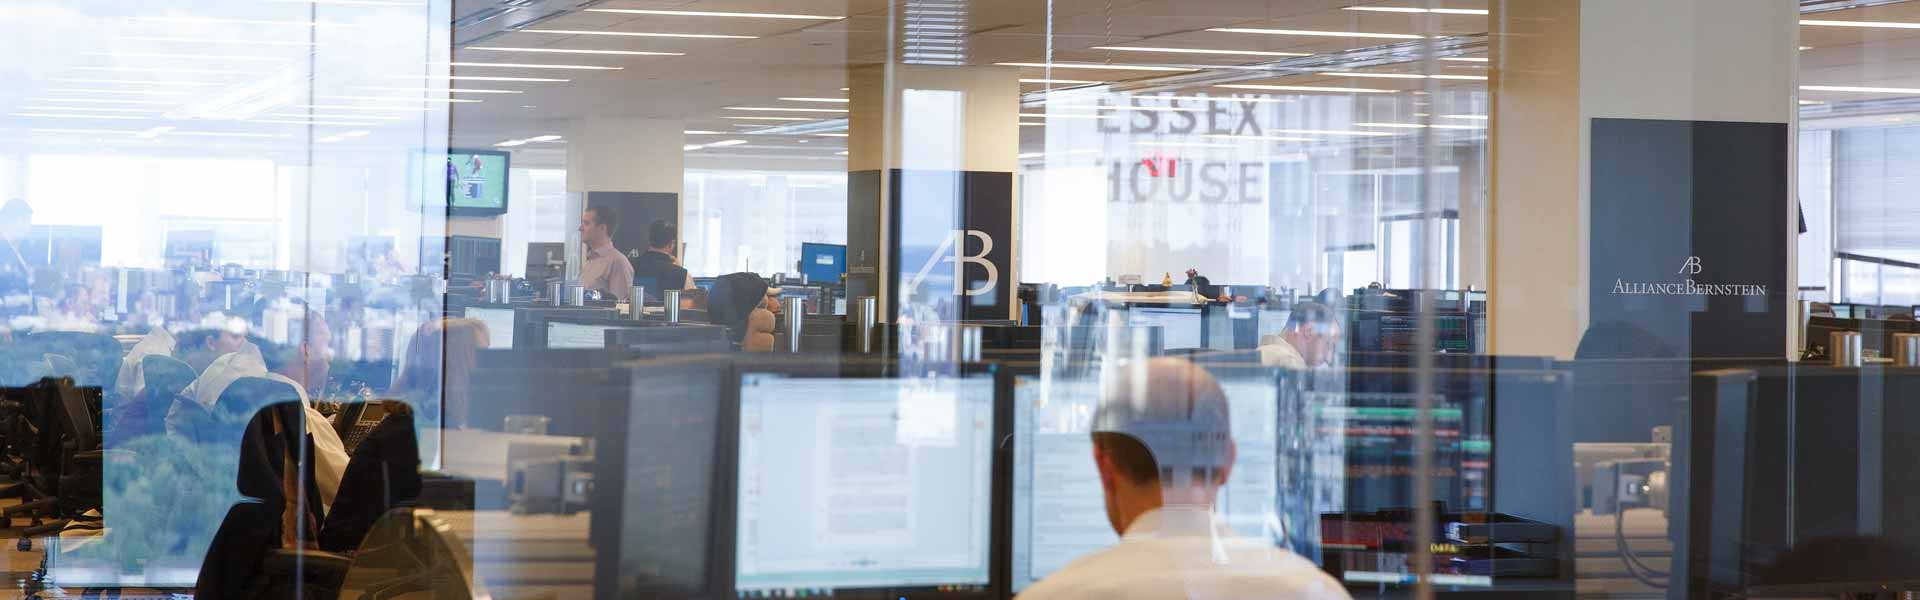 Career Opportunities at AllianceBernstein